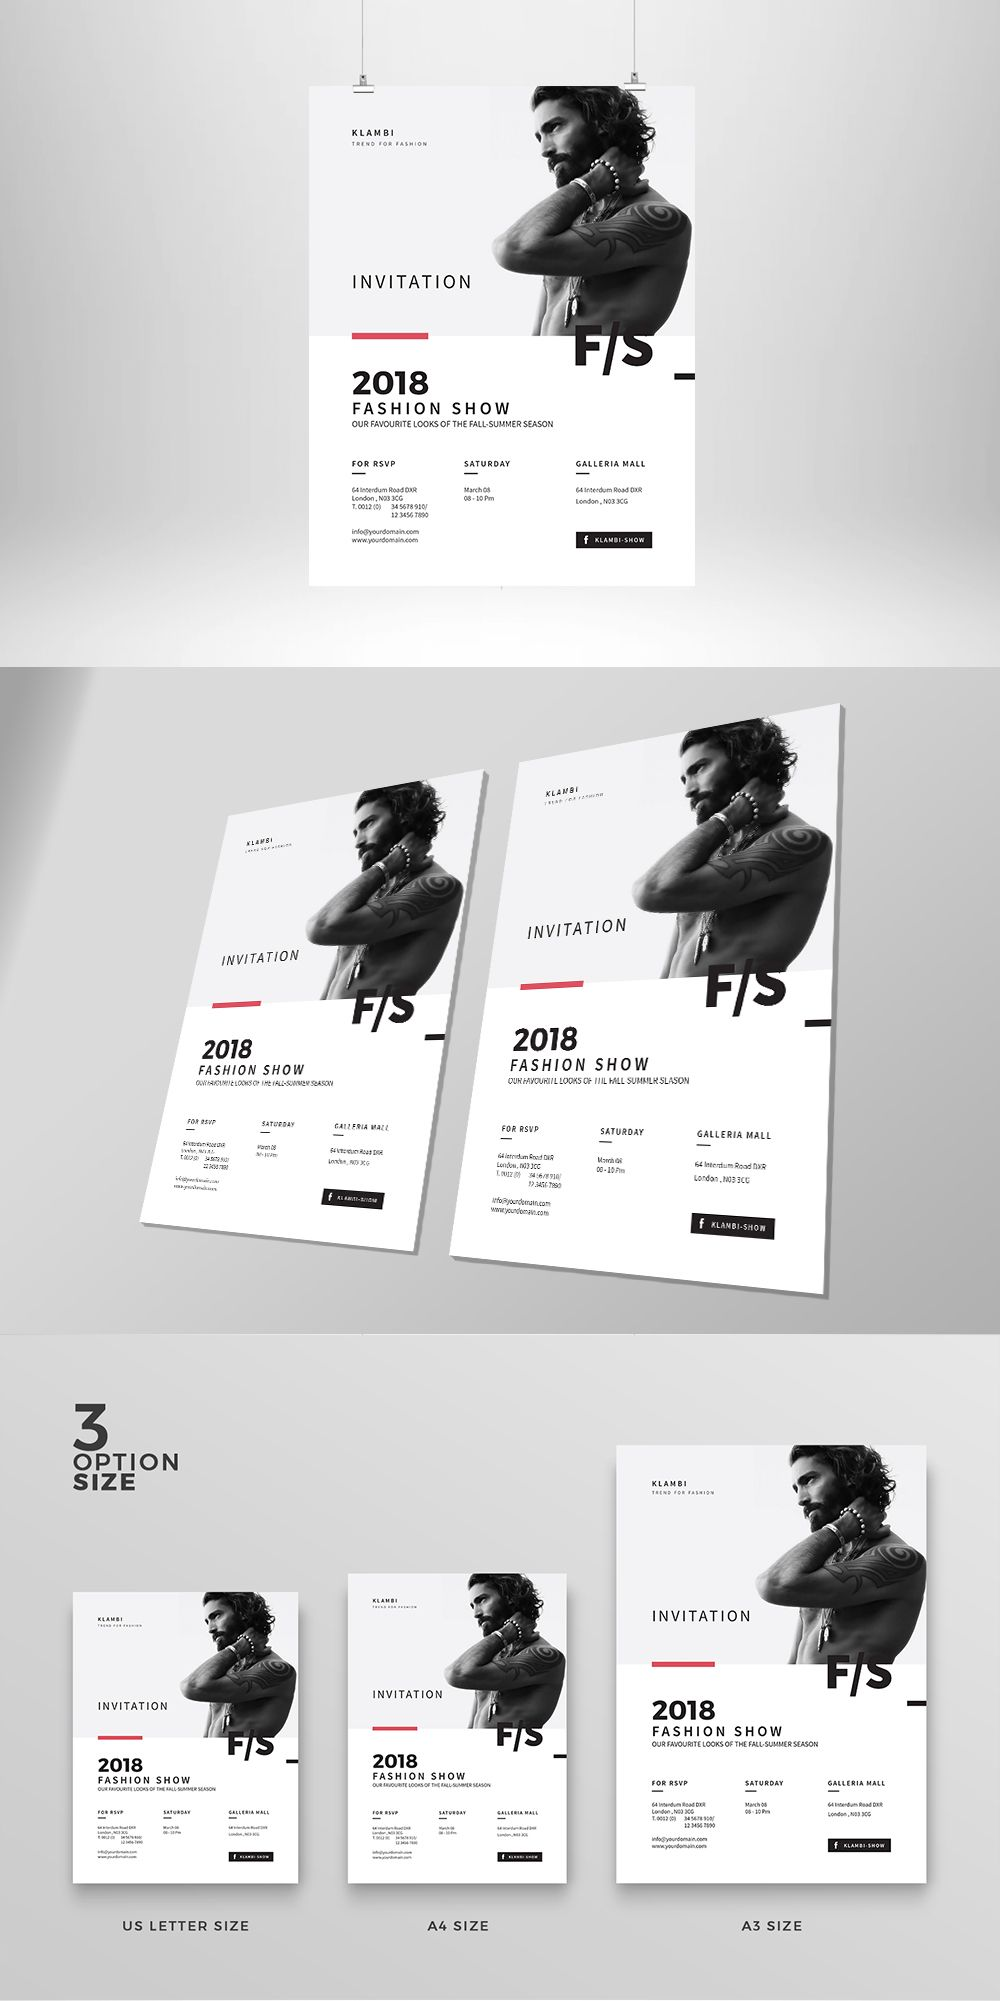 Invitation Fashion Flyer / Poster Template InDesign INDD | Flyer ...